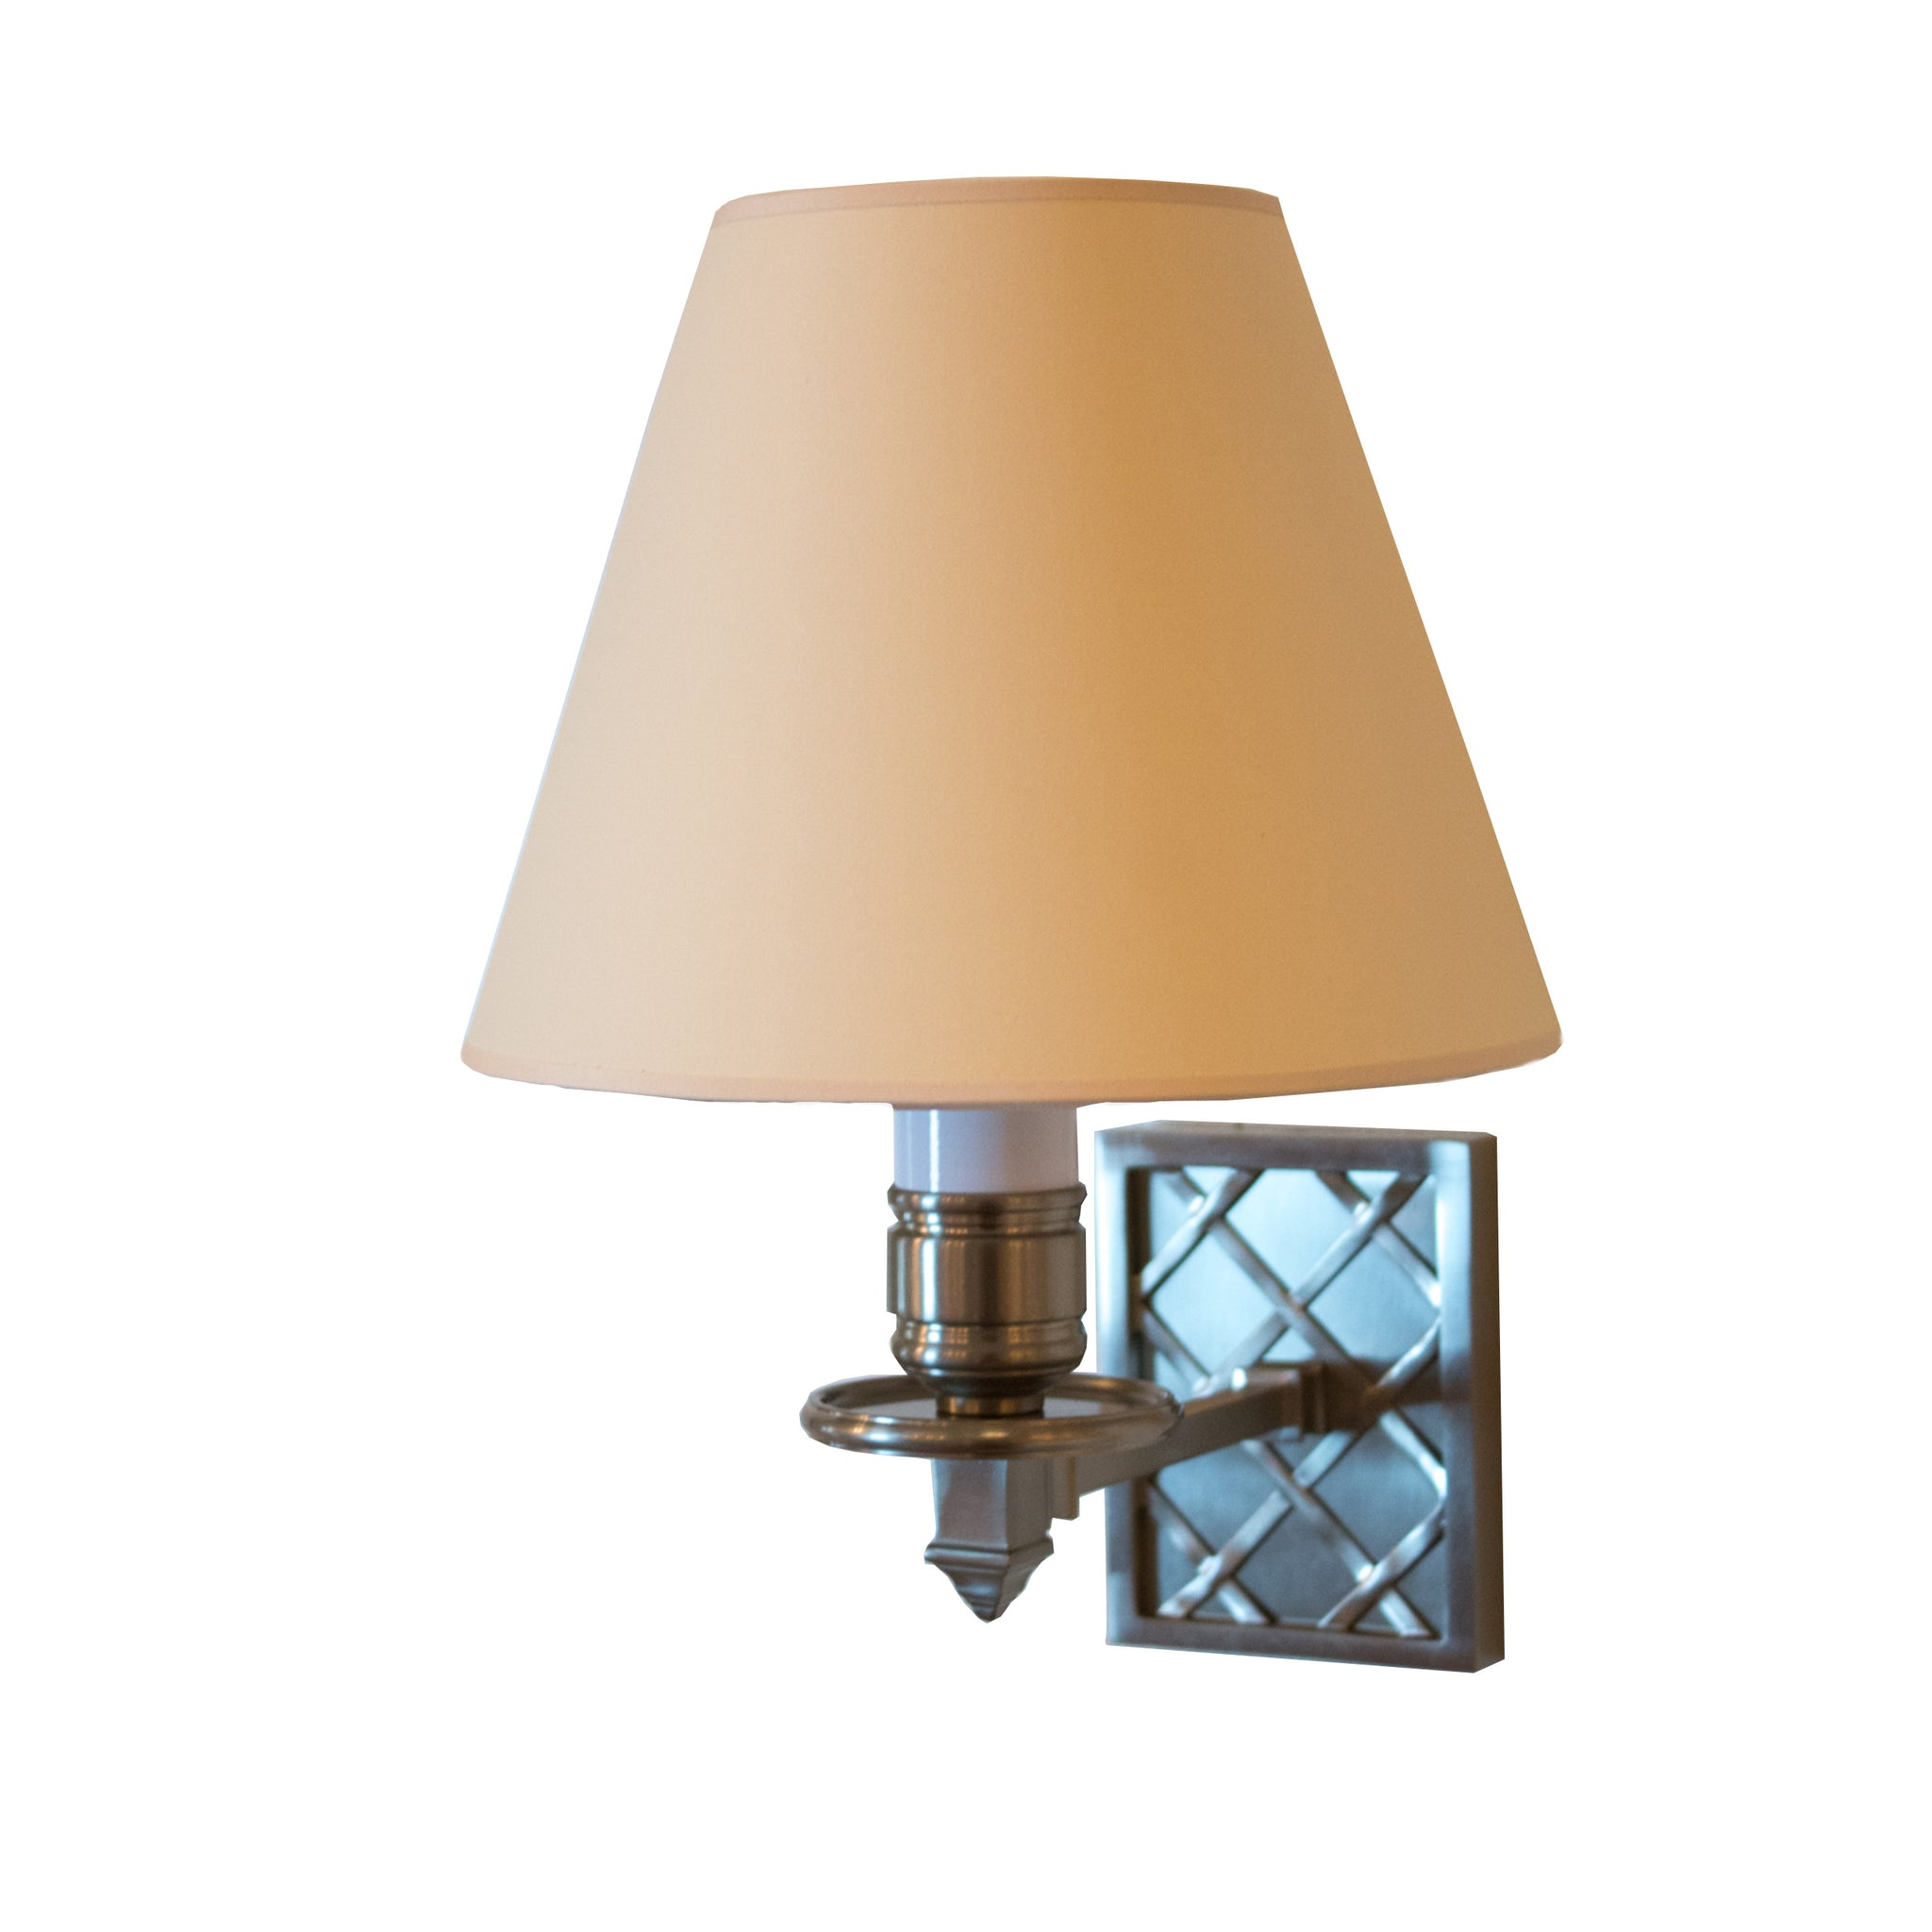 Gene Single Arm Sconce in Brushed Nickel with Natural Paper